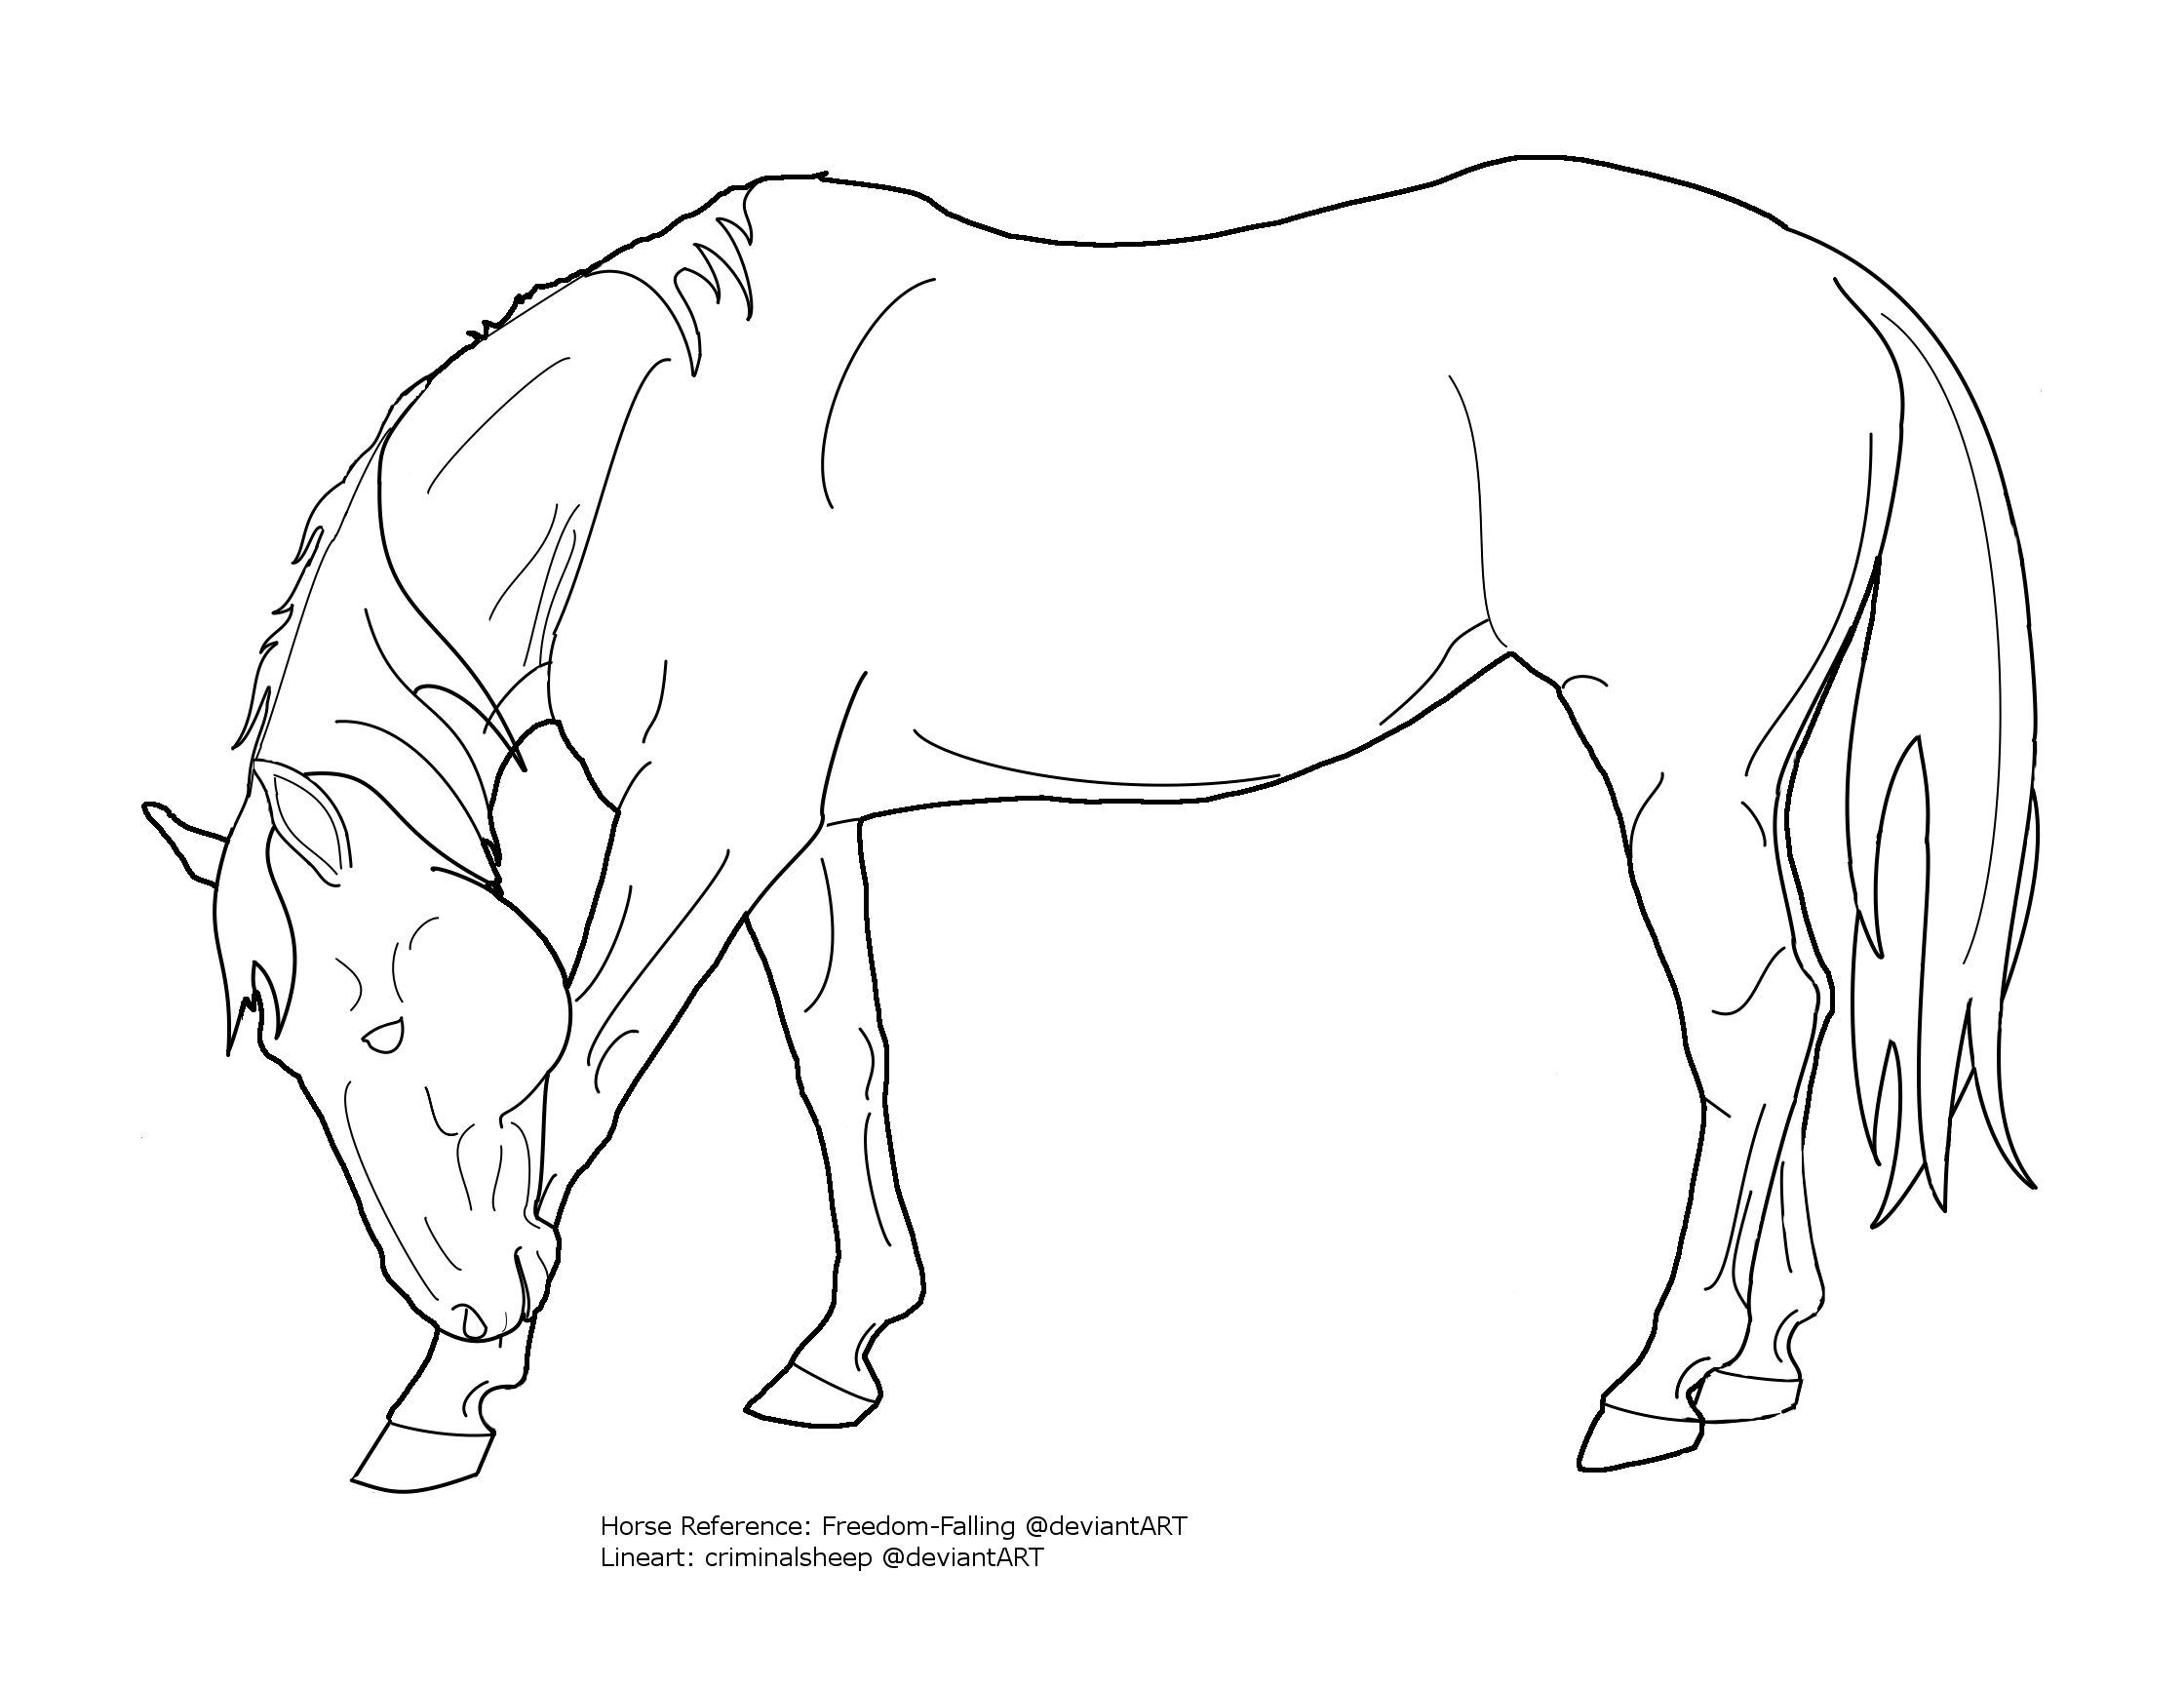 Line Drawing Of Horse : Bowing horse lineart by criminalsheep on deviantart